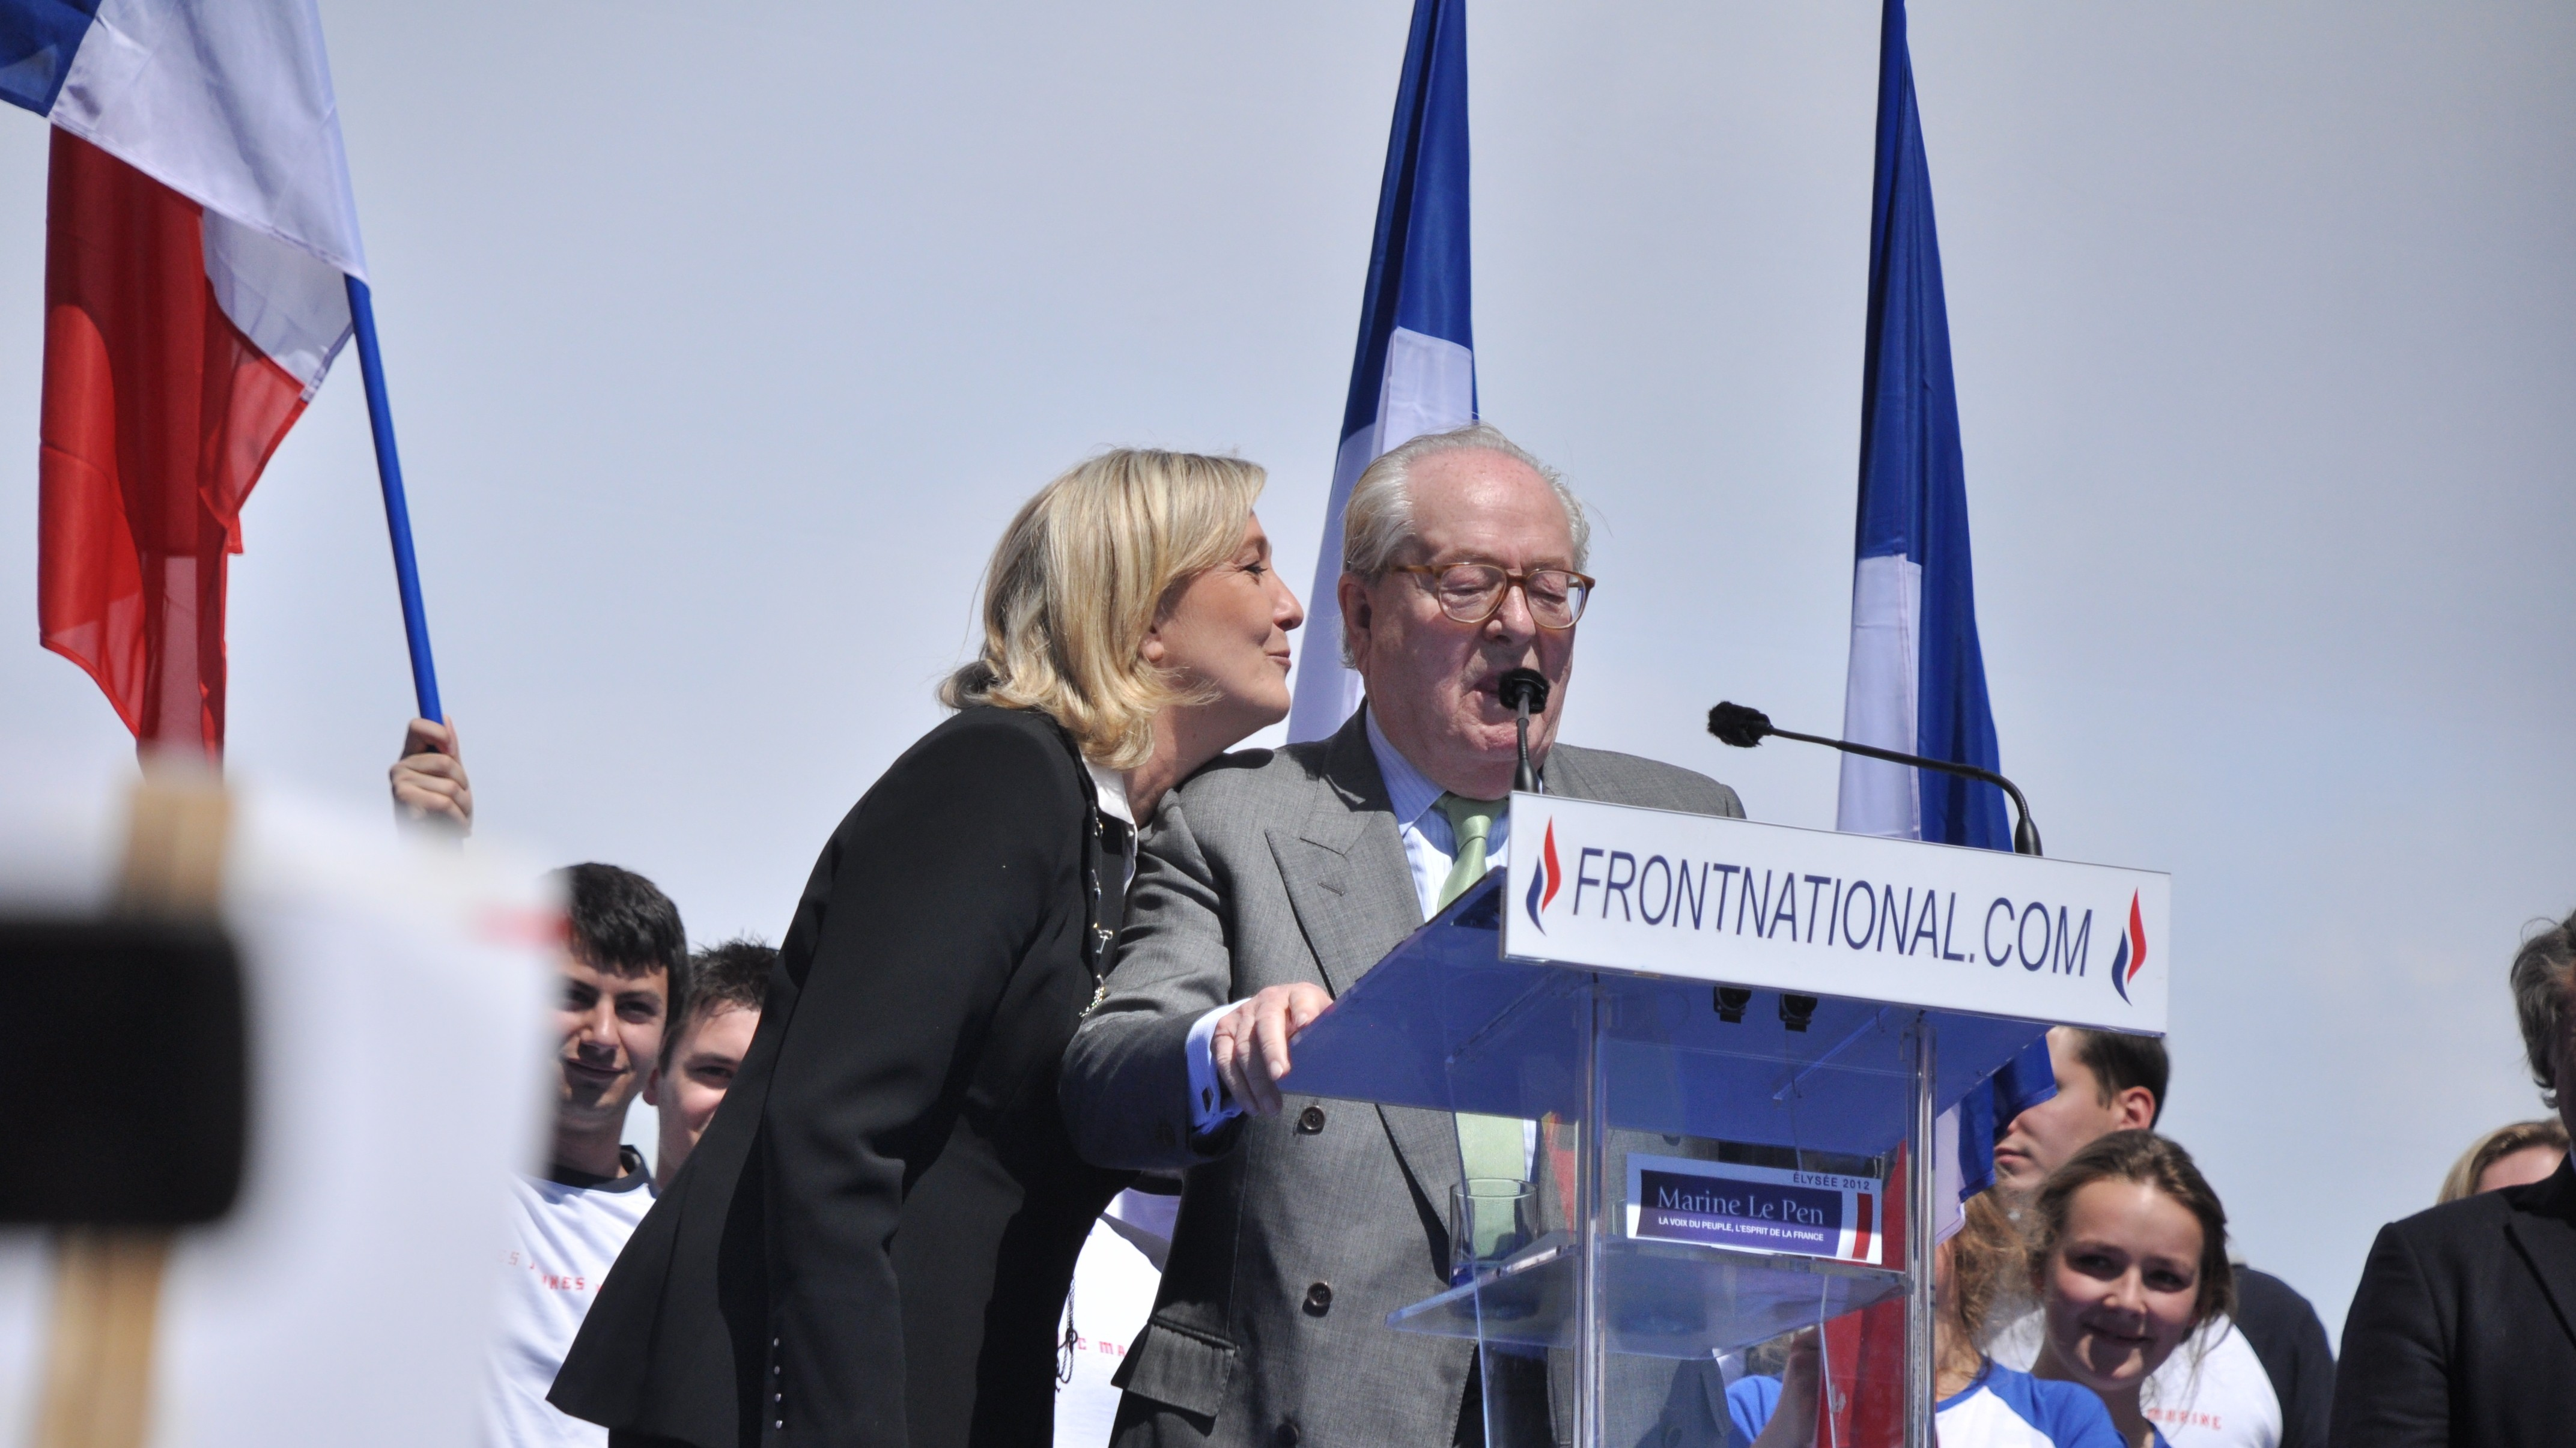 Right-Wing National Front's Marine Le Pen Seeks to Discipline Her Father and Party Founder